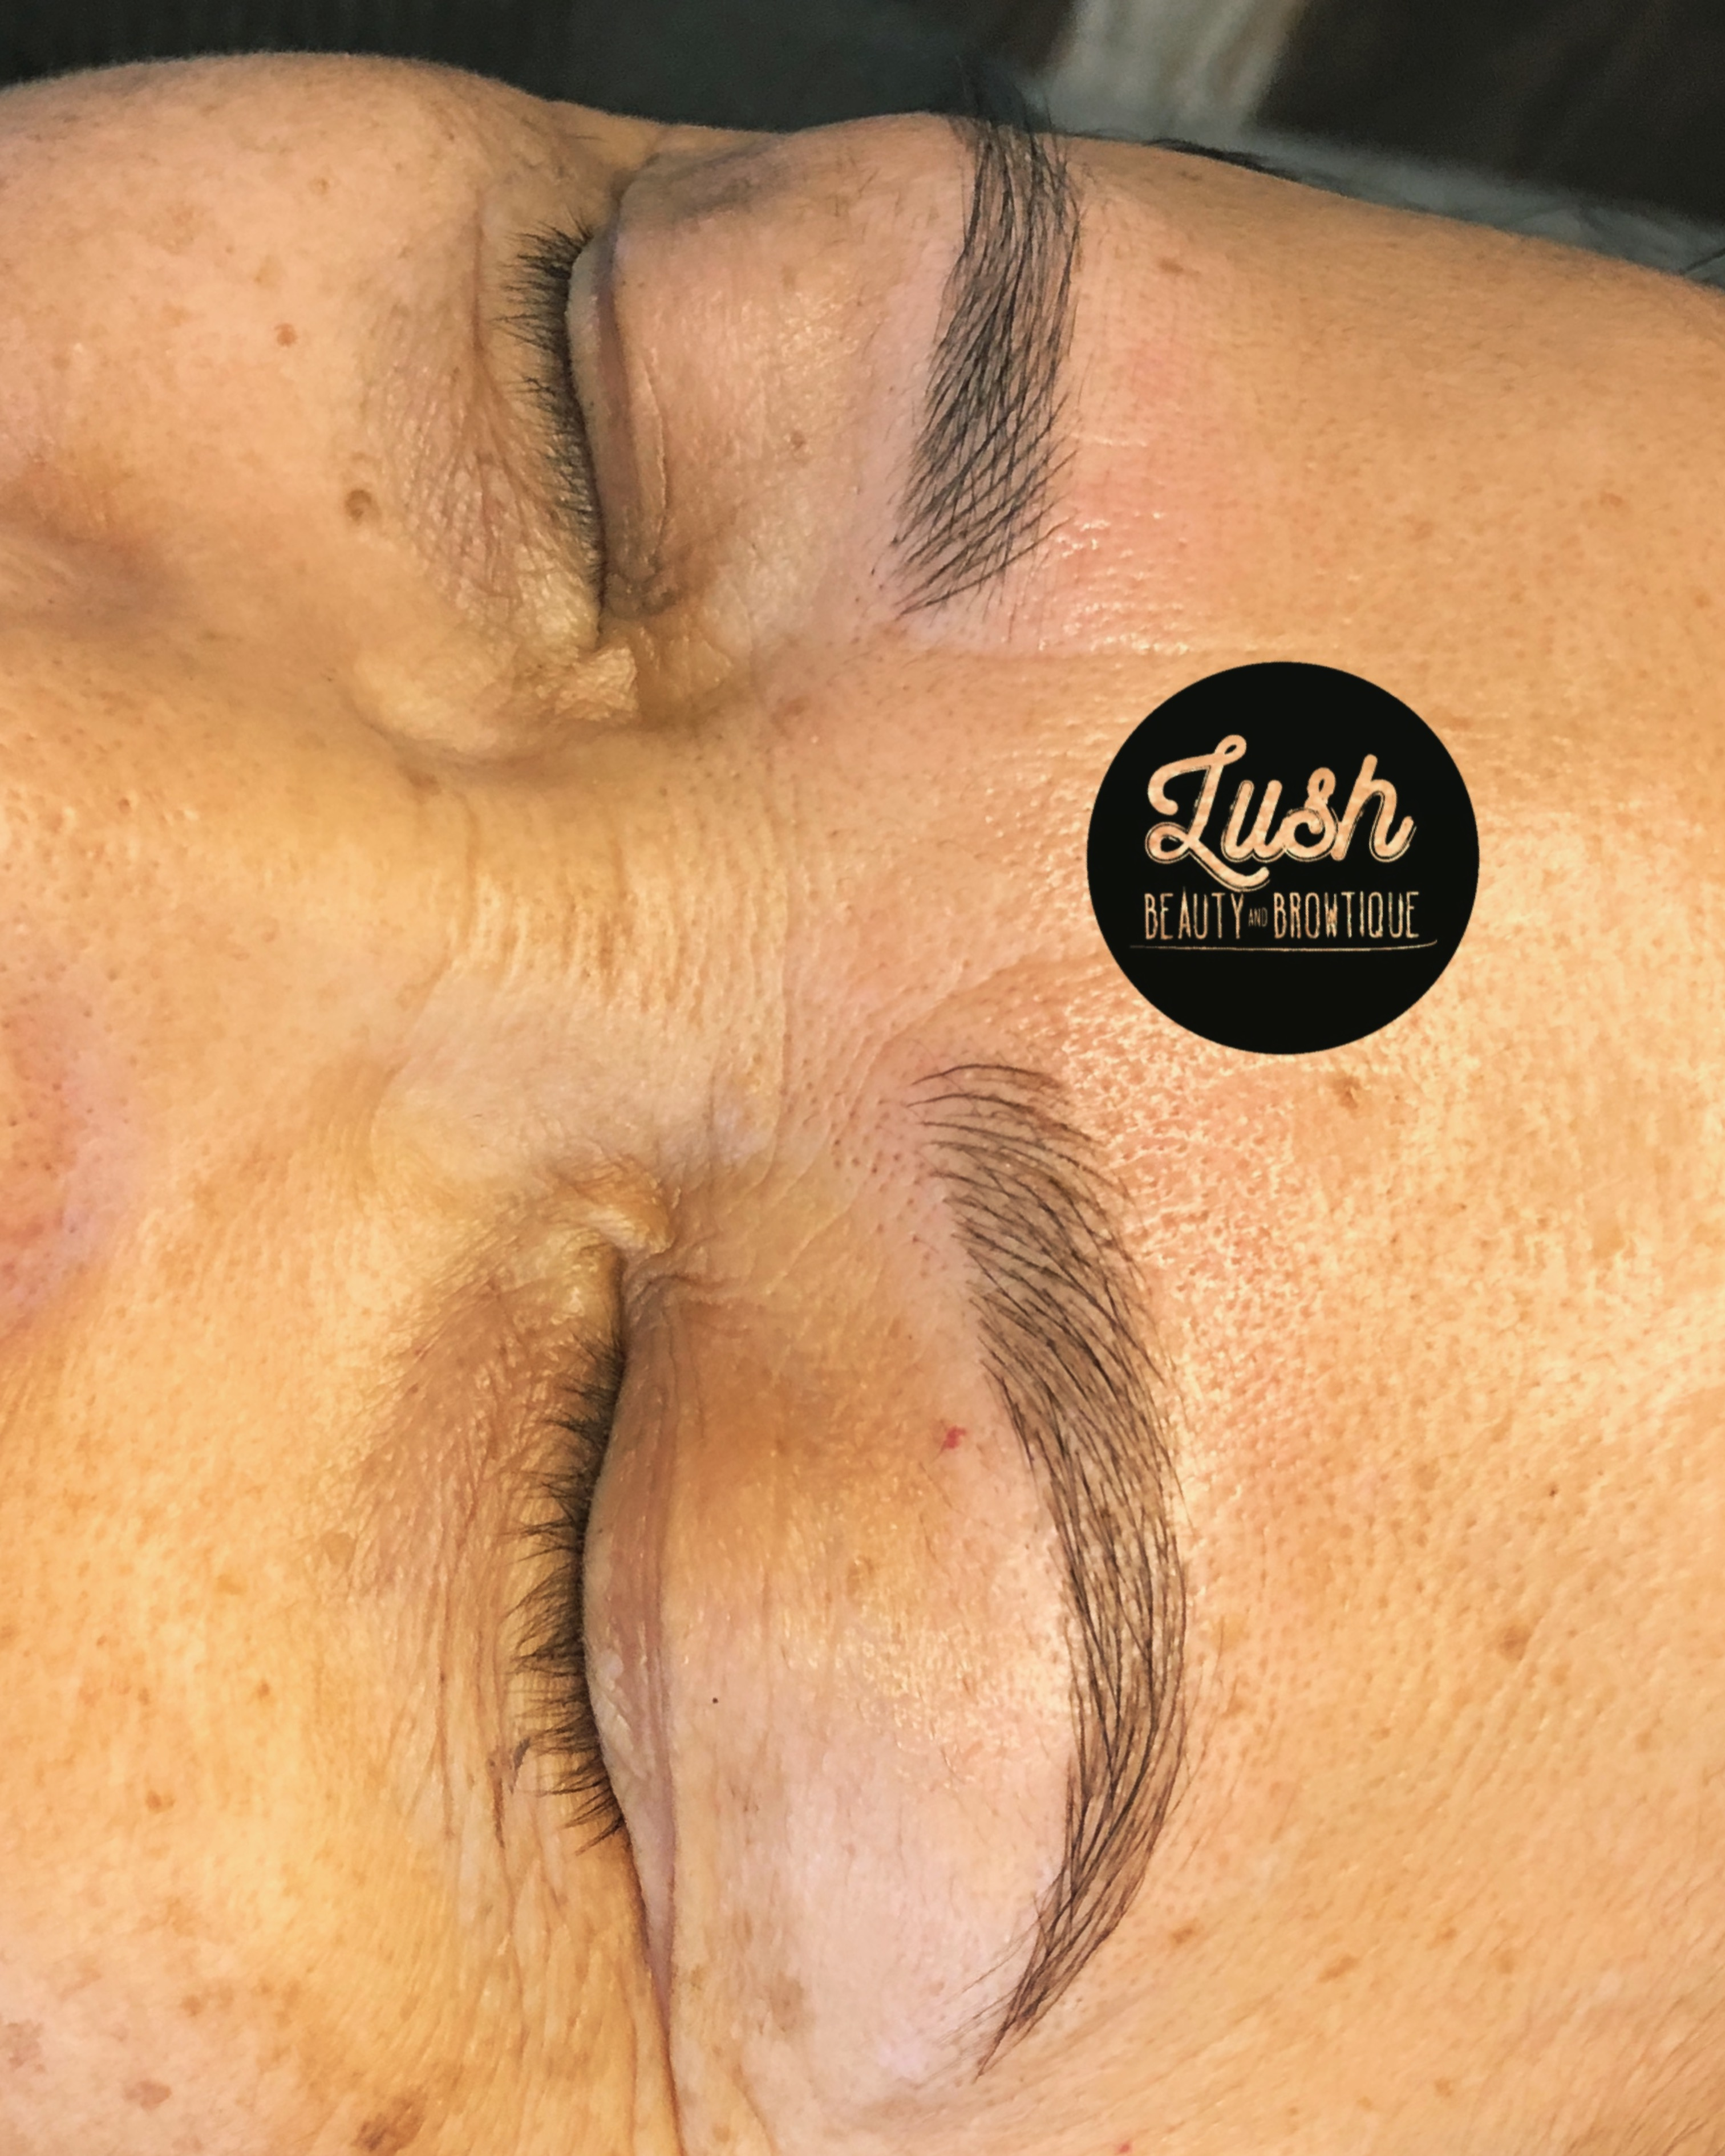 Lush Beauty and Browtique  image